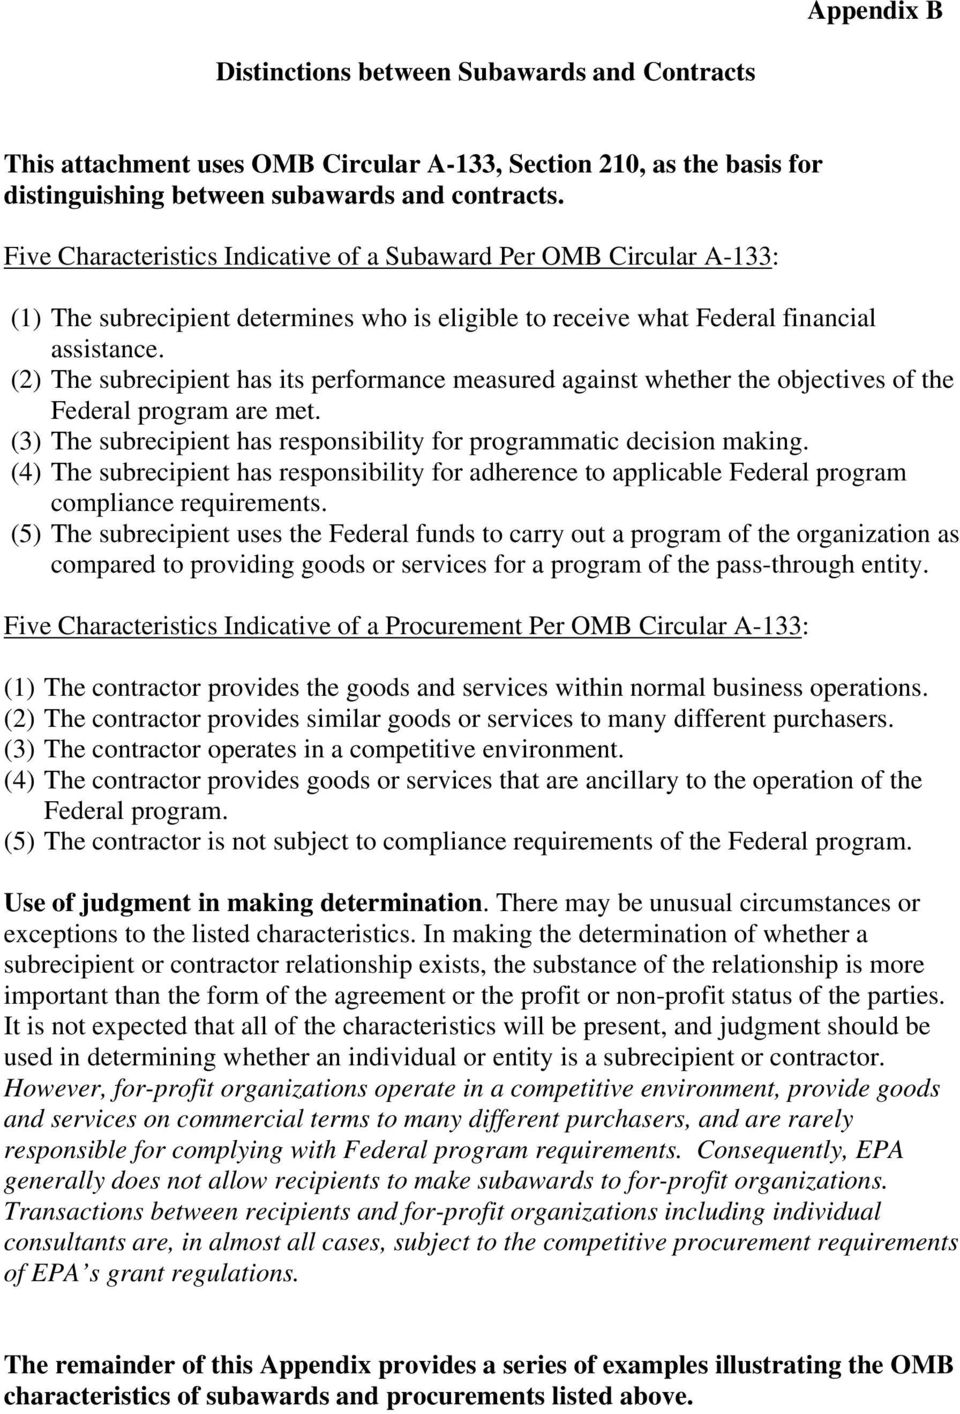 (2) The subrecipient has its performance measured against whether the objectives of the Federal program are met. (3) The subrecipient has responsibility for programmatic decision making.